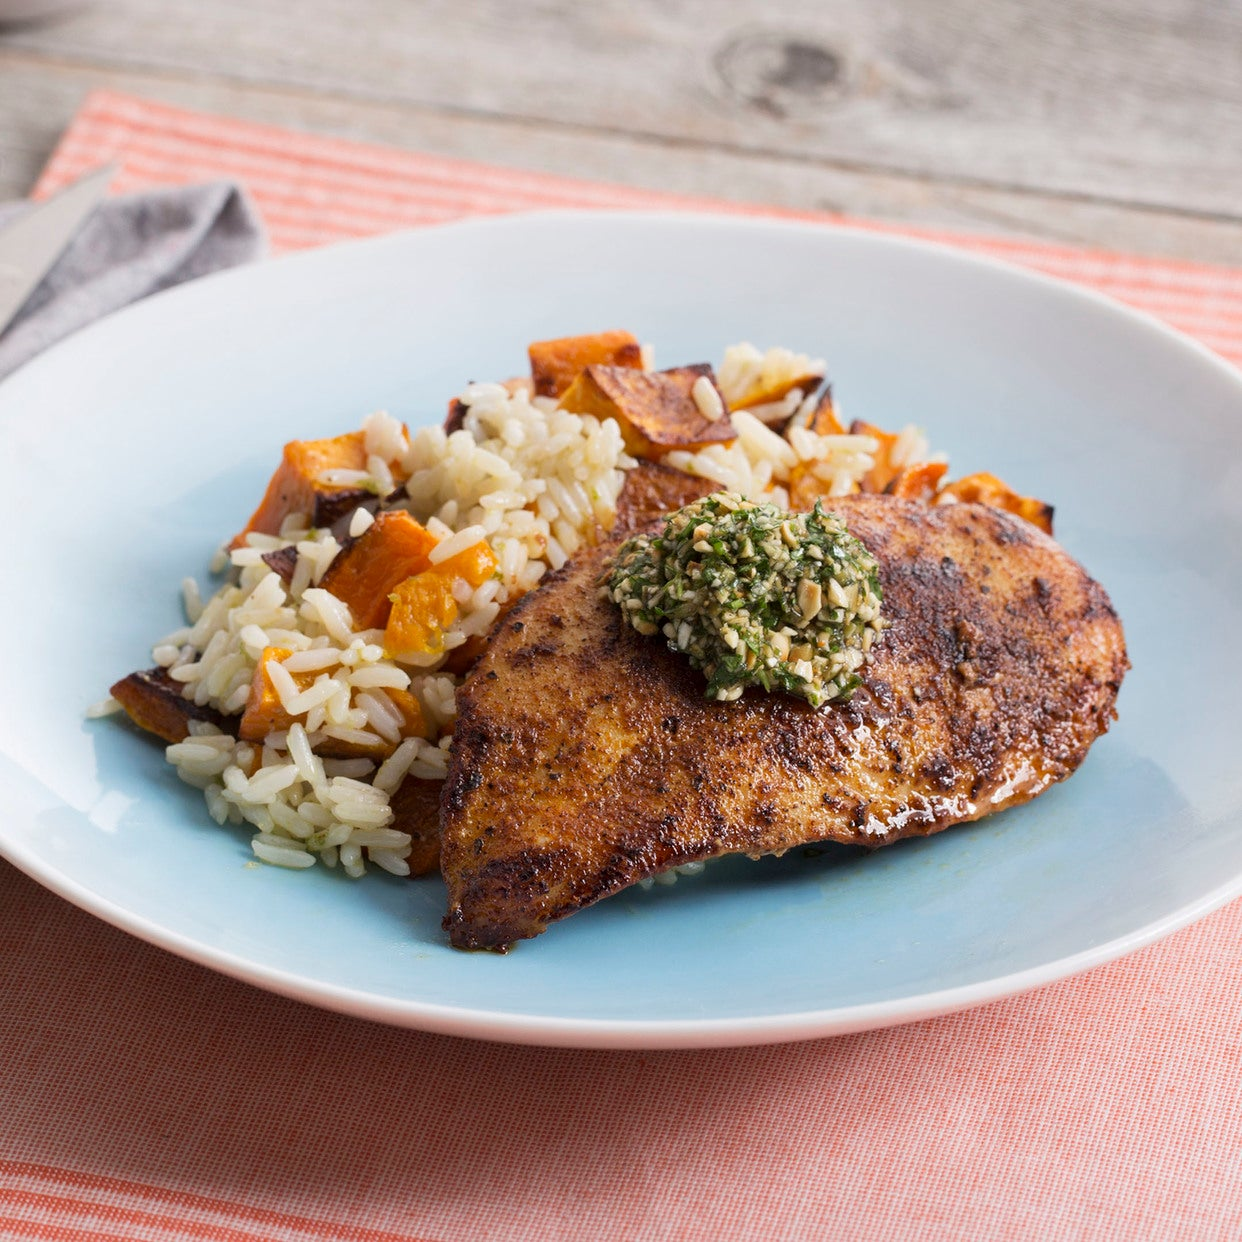 Seared Chicken with Roasted Honeynut Squash & Garlic Rice